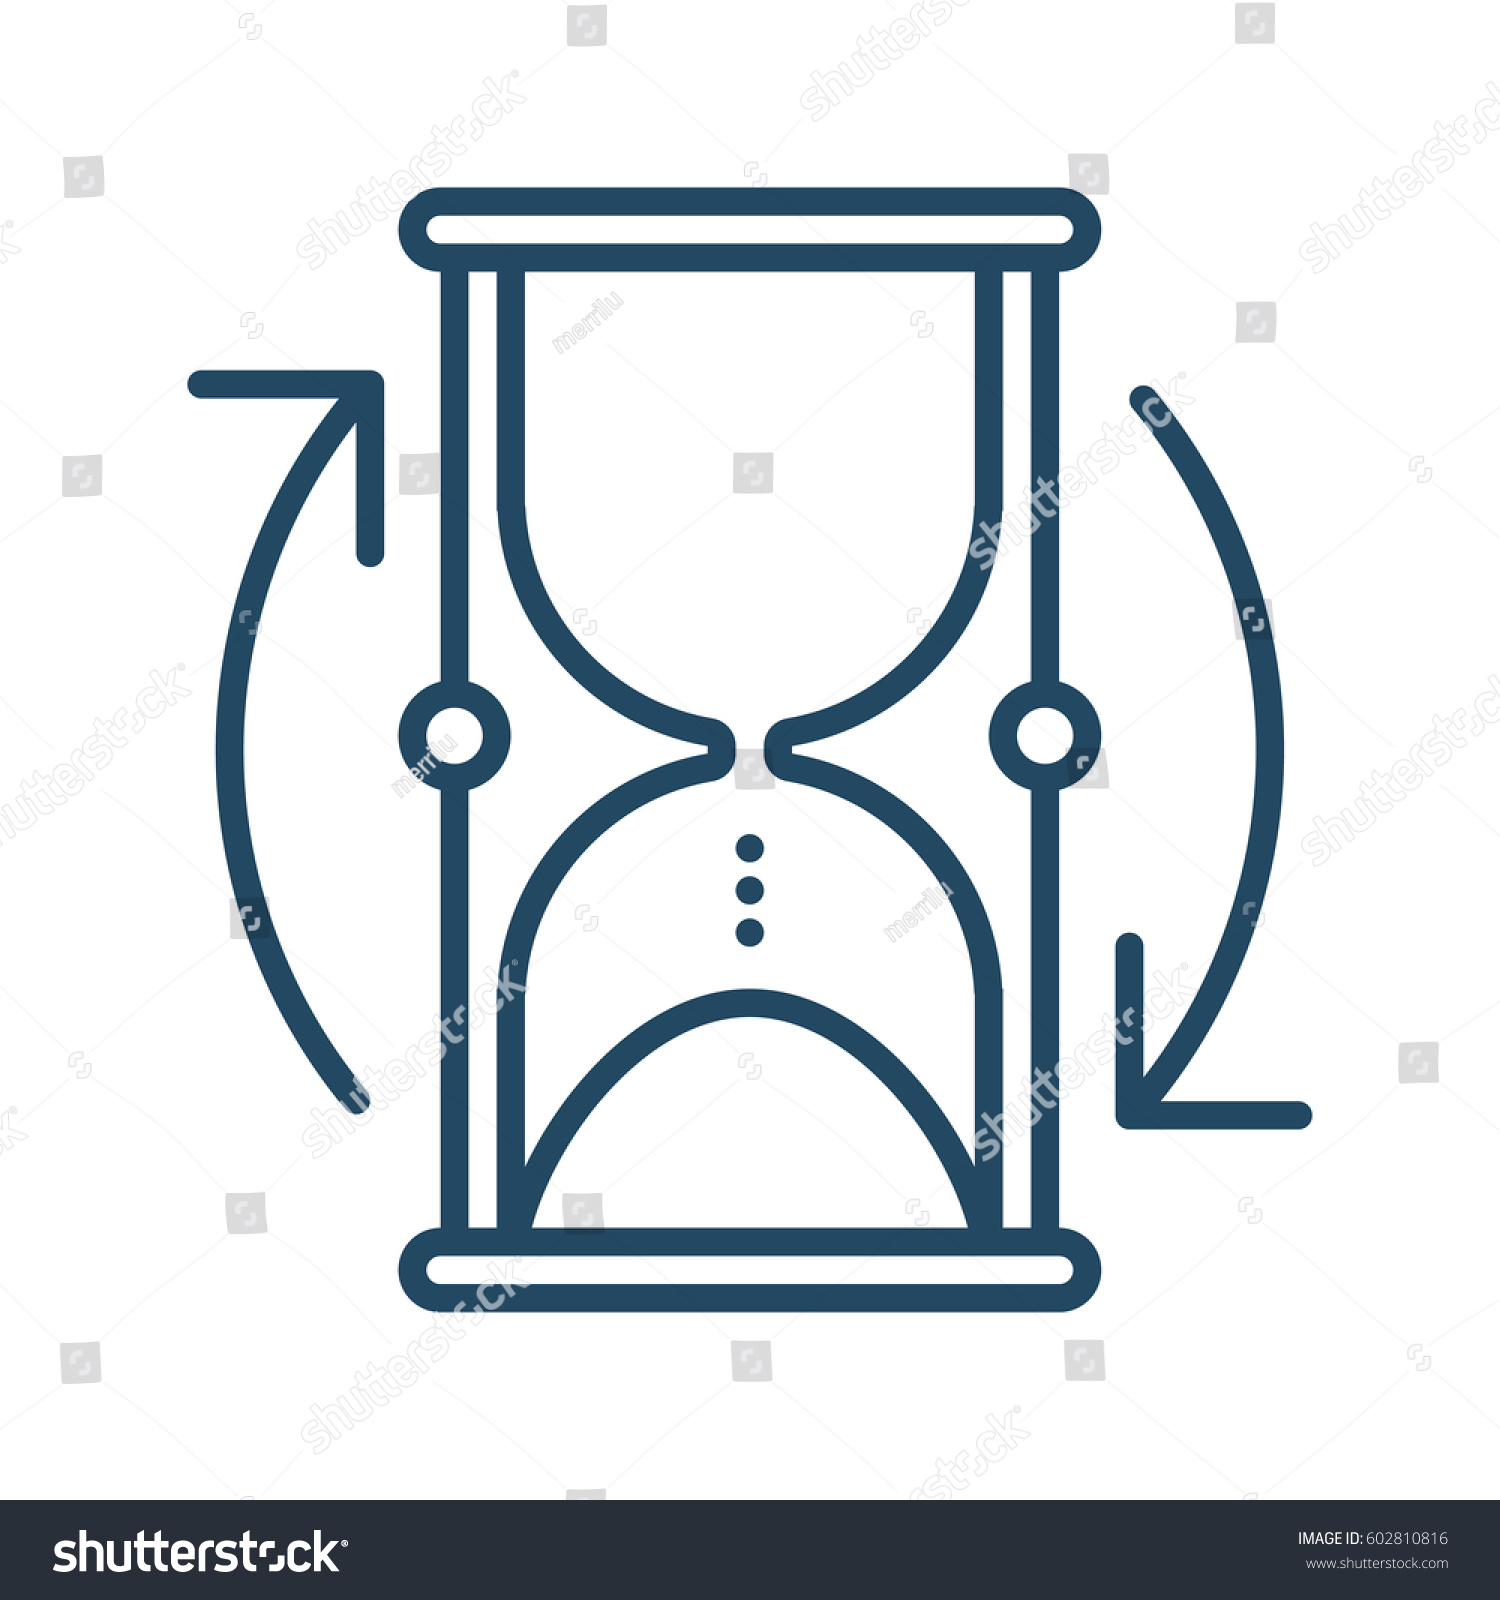 Hourglass arrows vector icon meaning start stock vector 602810816 hourglass and arrows vector icon in meaning start over biocorpaavc Images